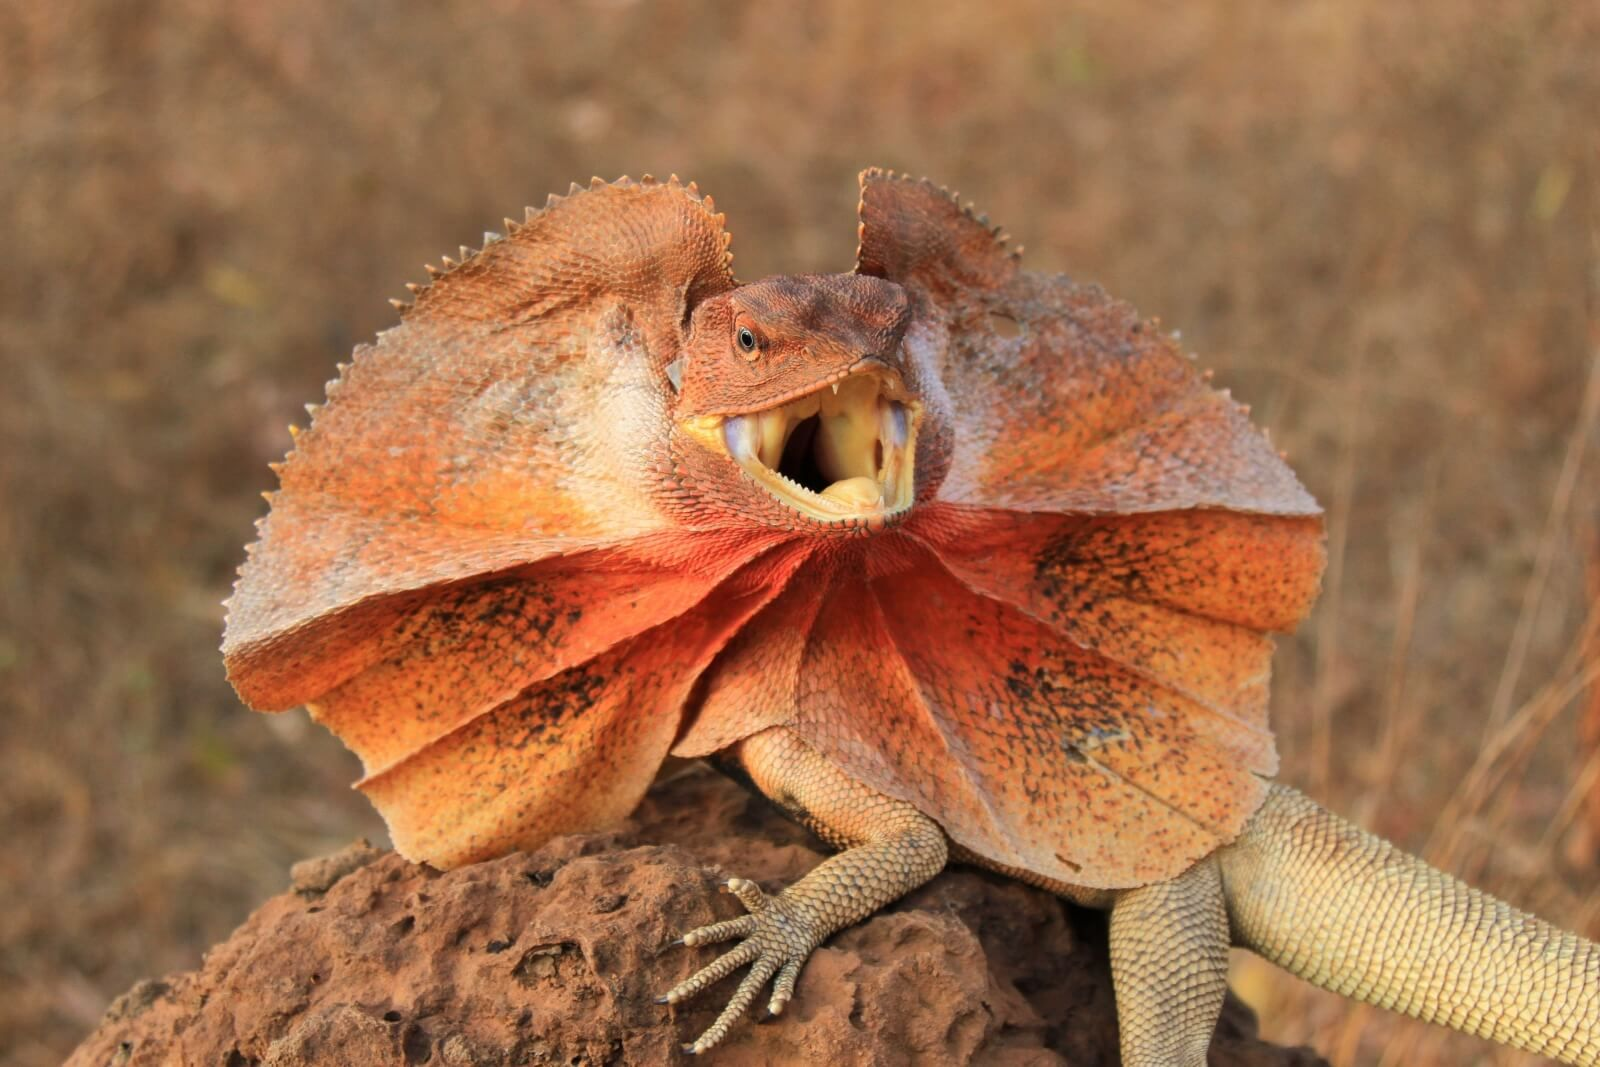 Frill-Necked Lizards (Frilled Dragons)